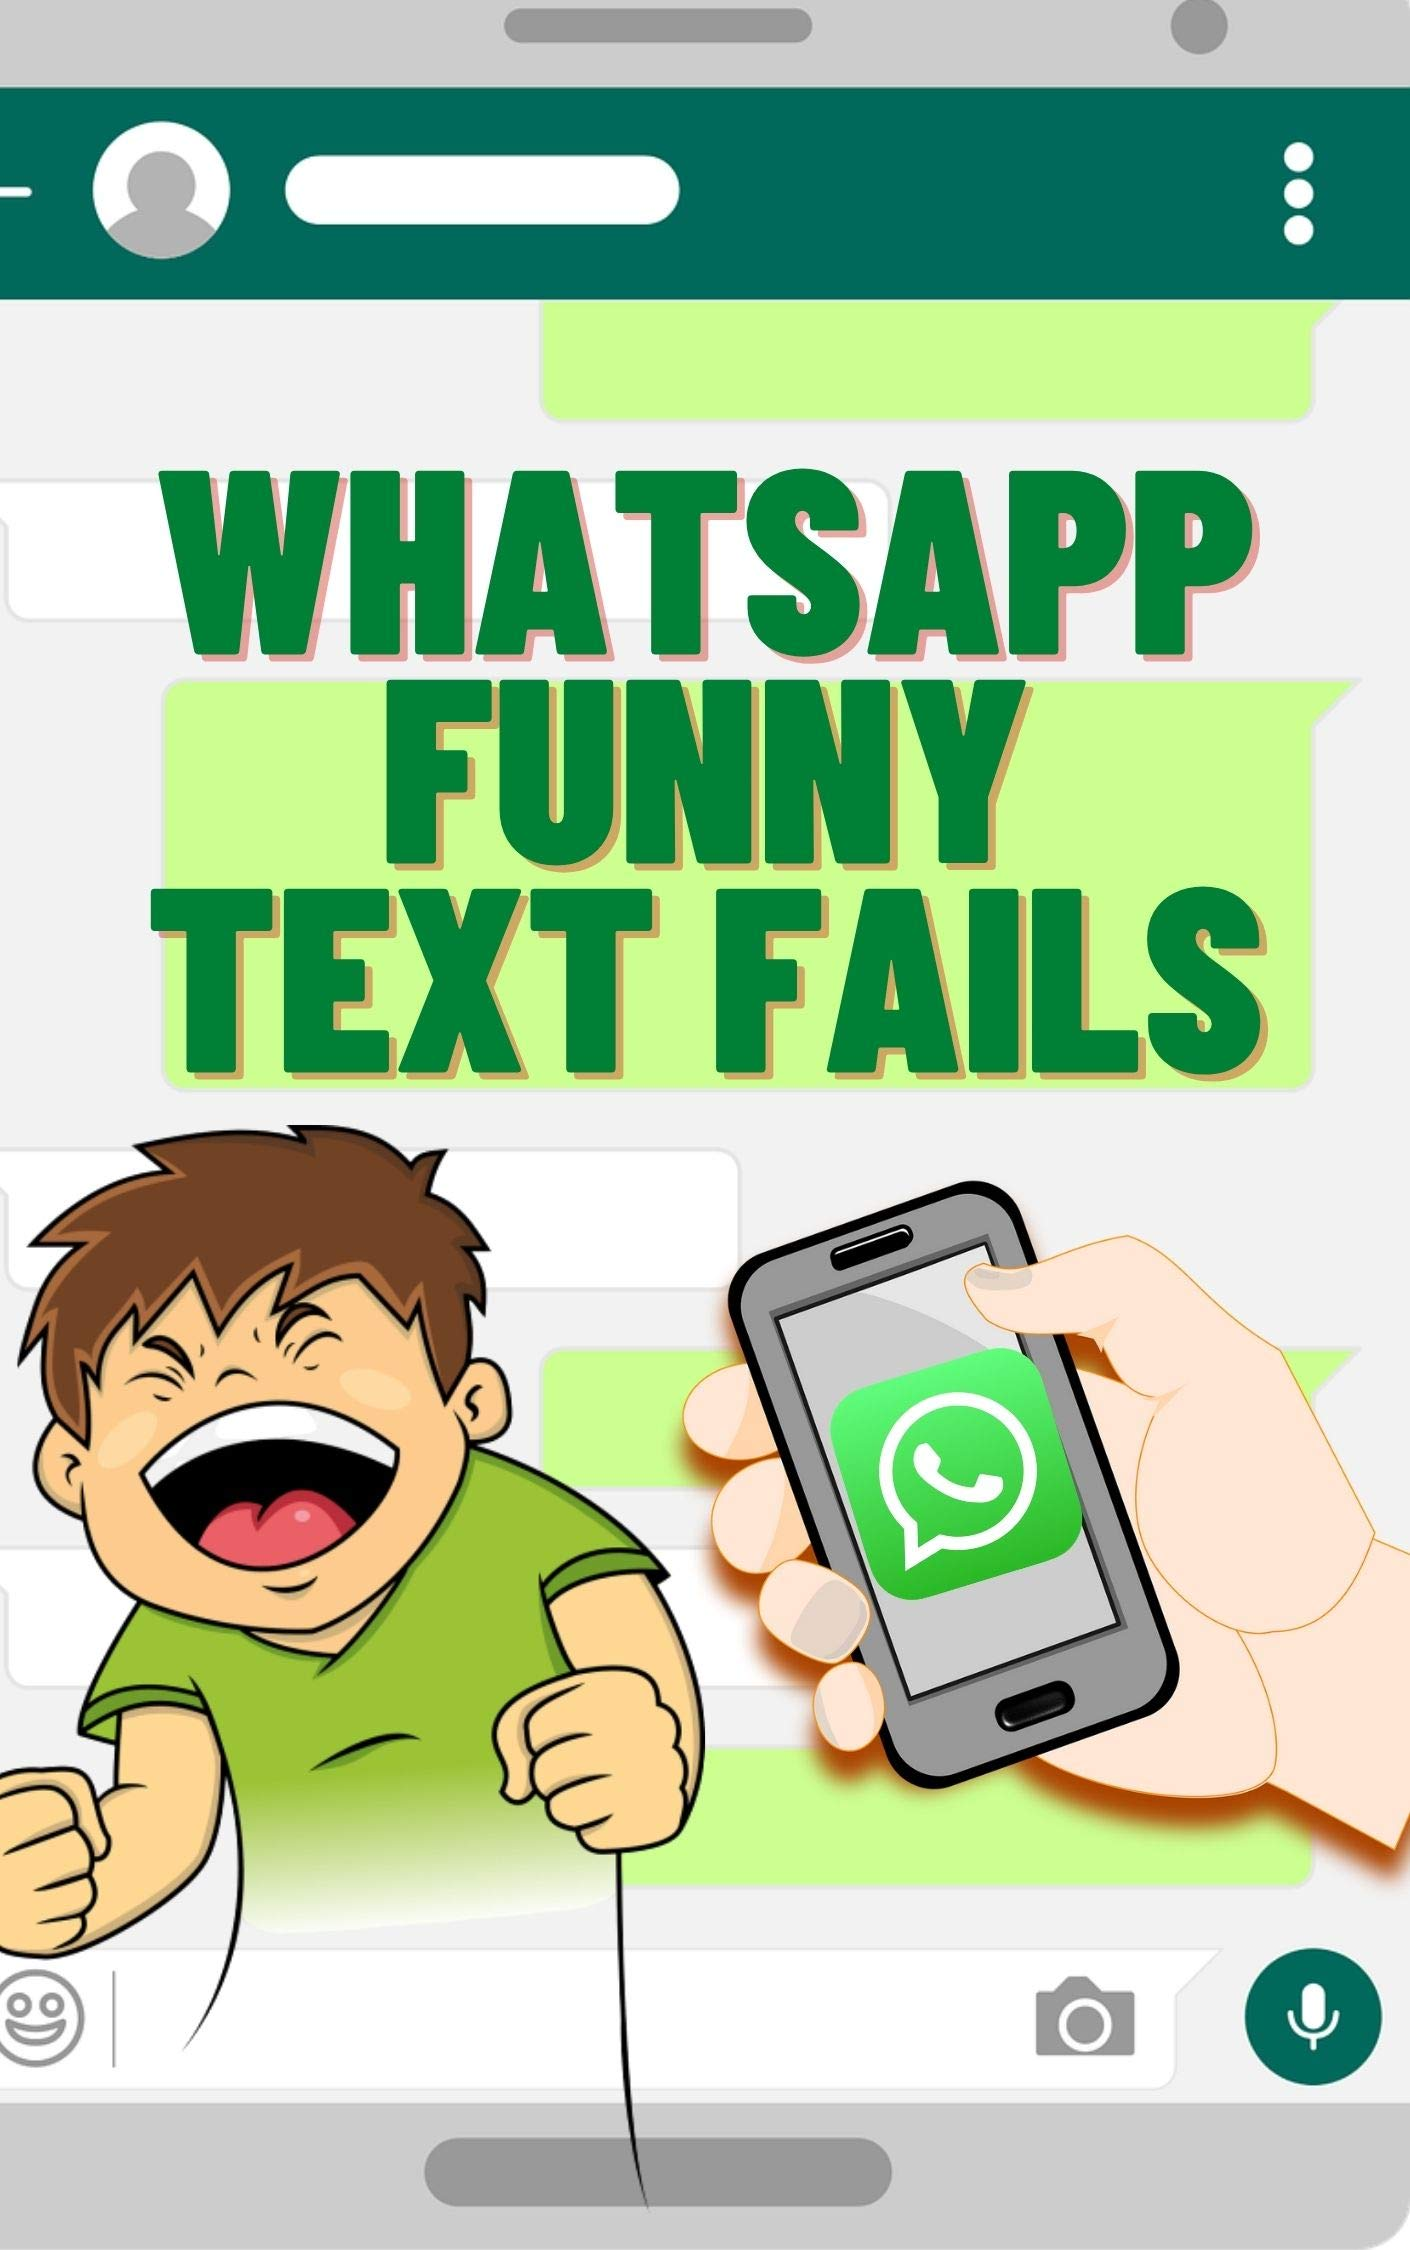 whatsapp funny text fails: smartphone epic whatsapp text fails funny conversation everyday laughing